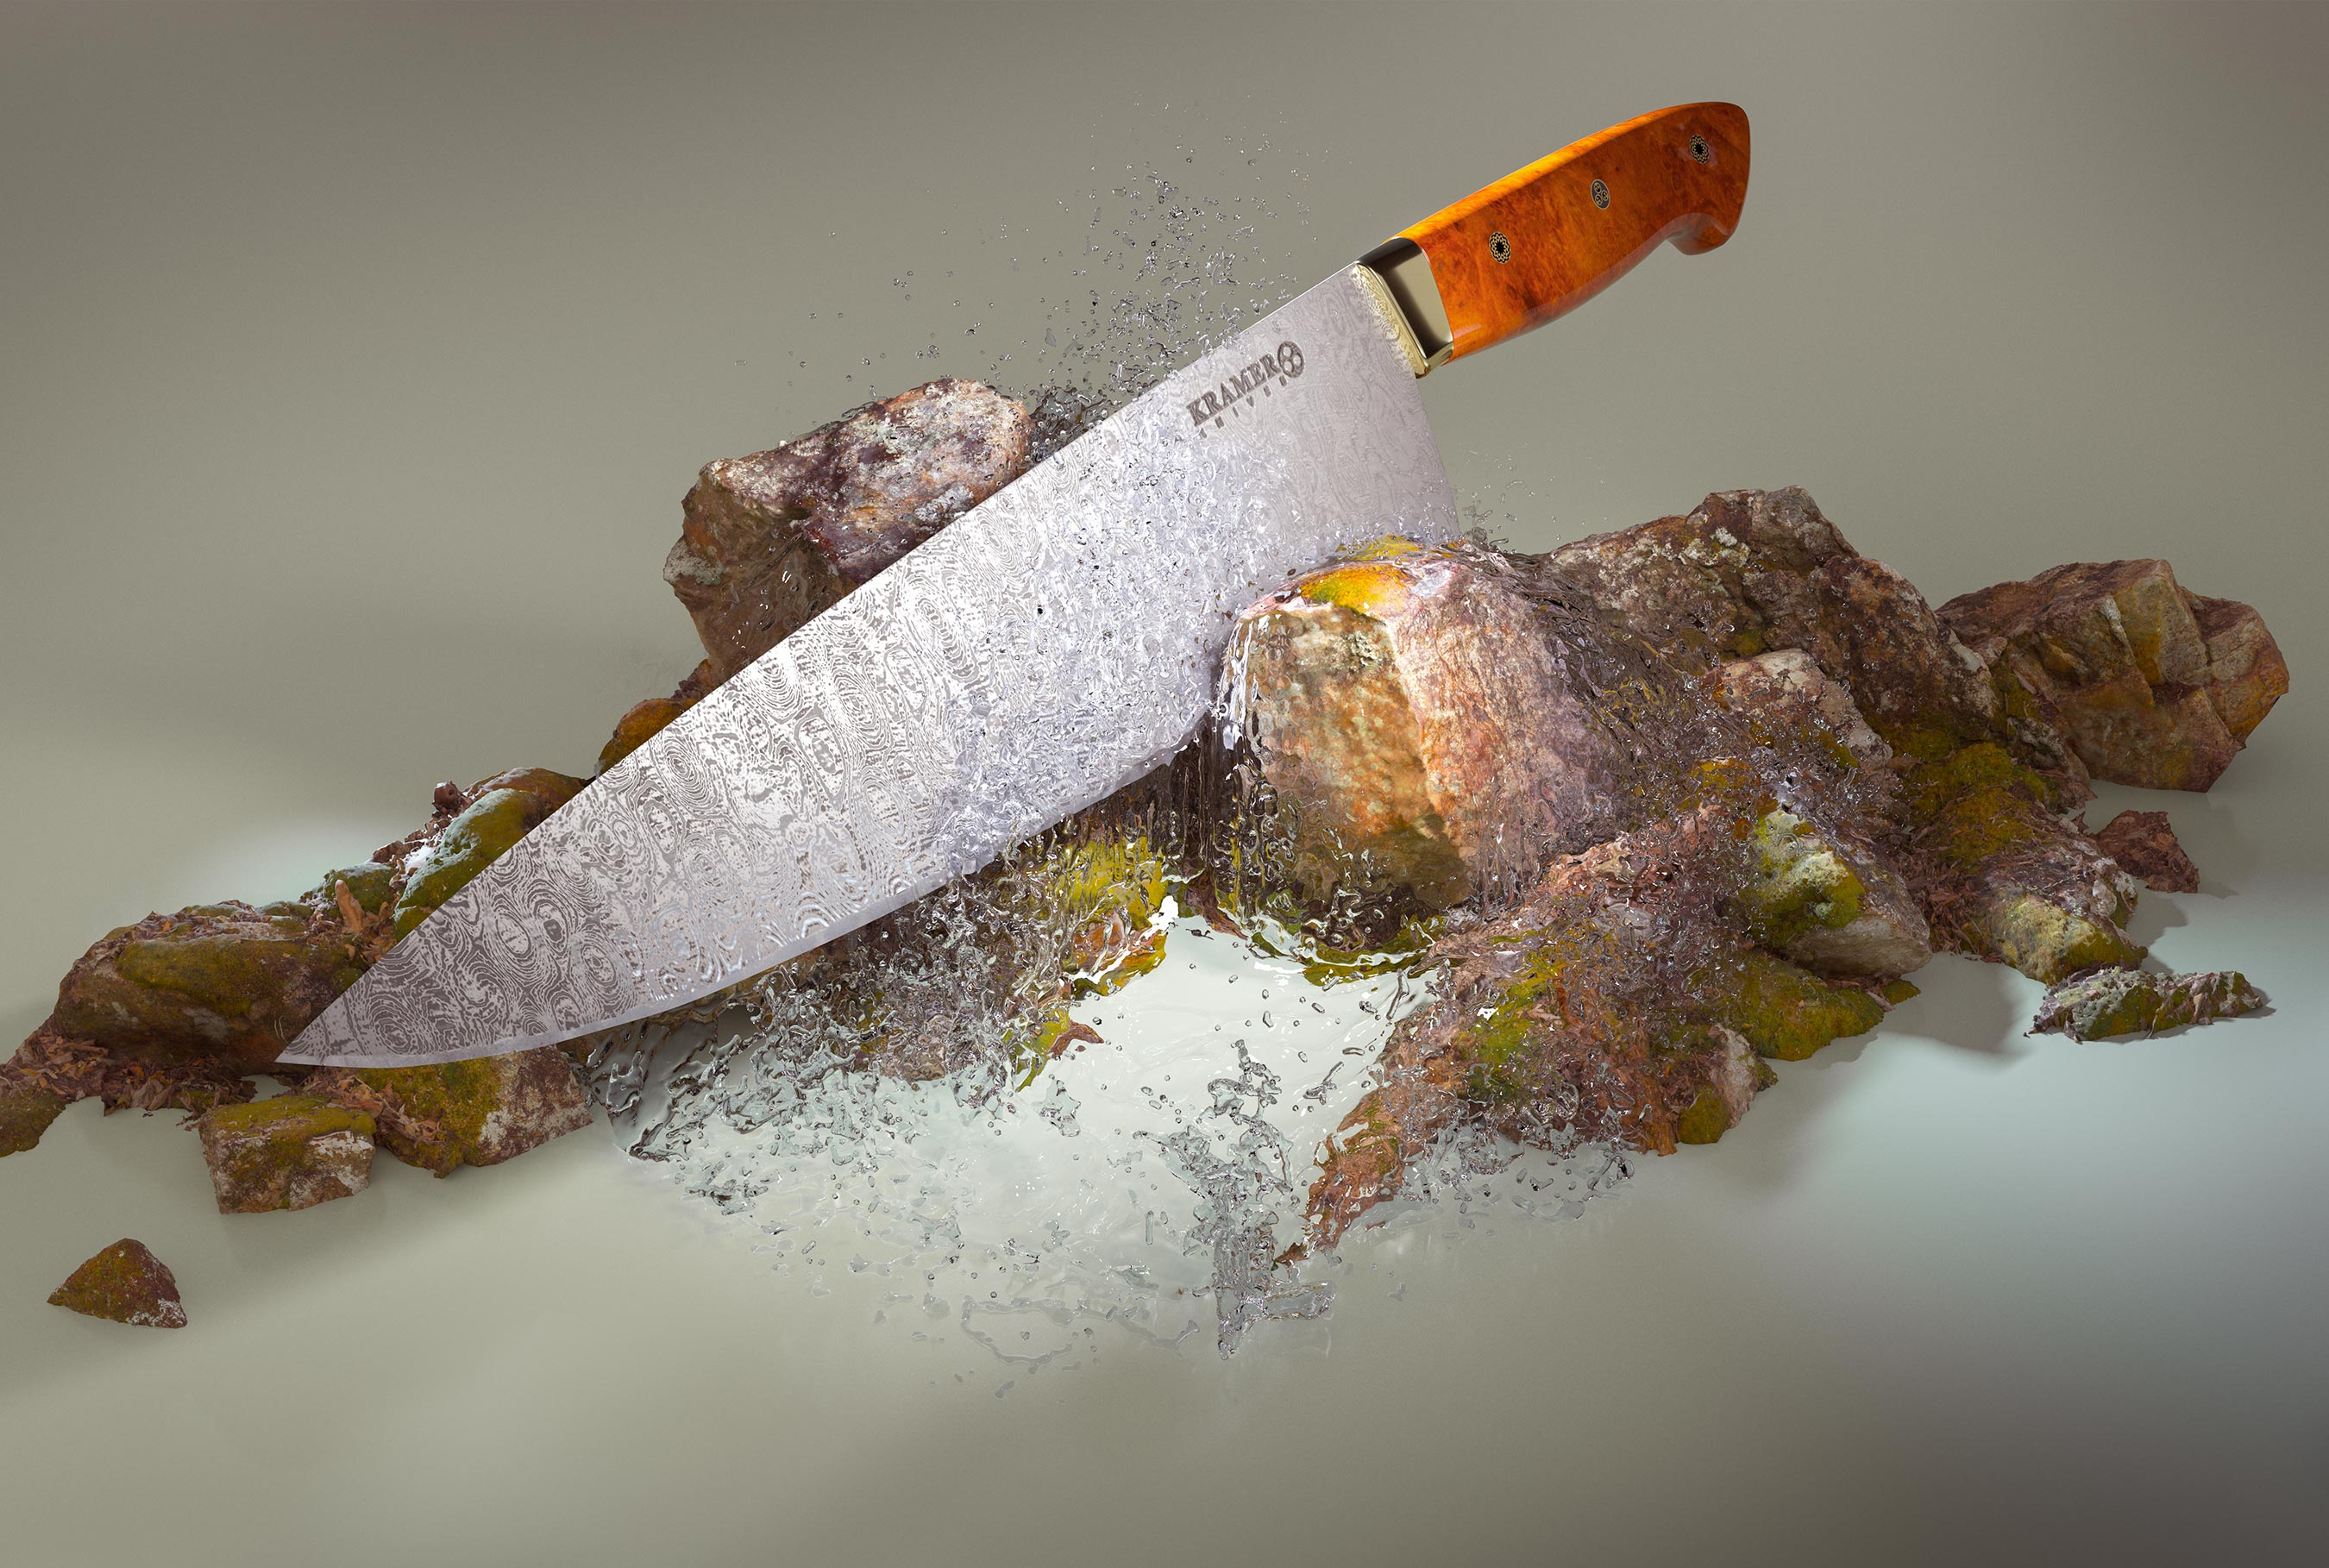 Kramer Knife 3d Render | Steve Hansen Images Seattle Food Photographer